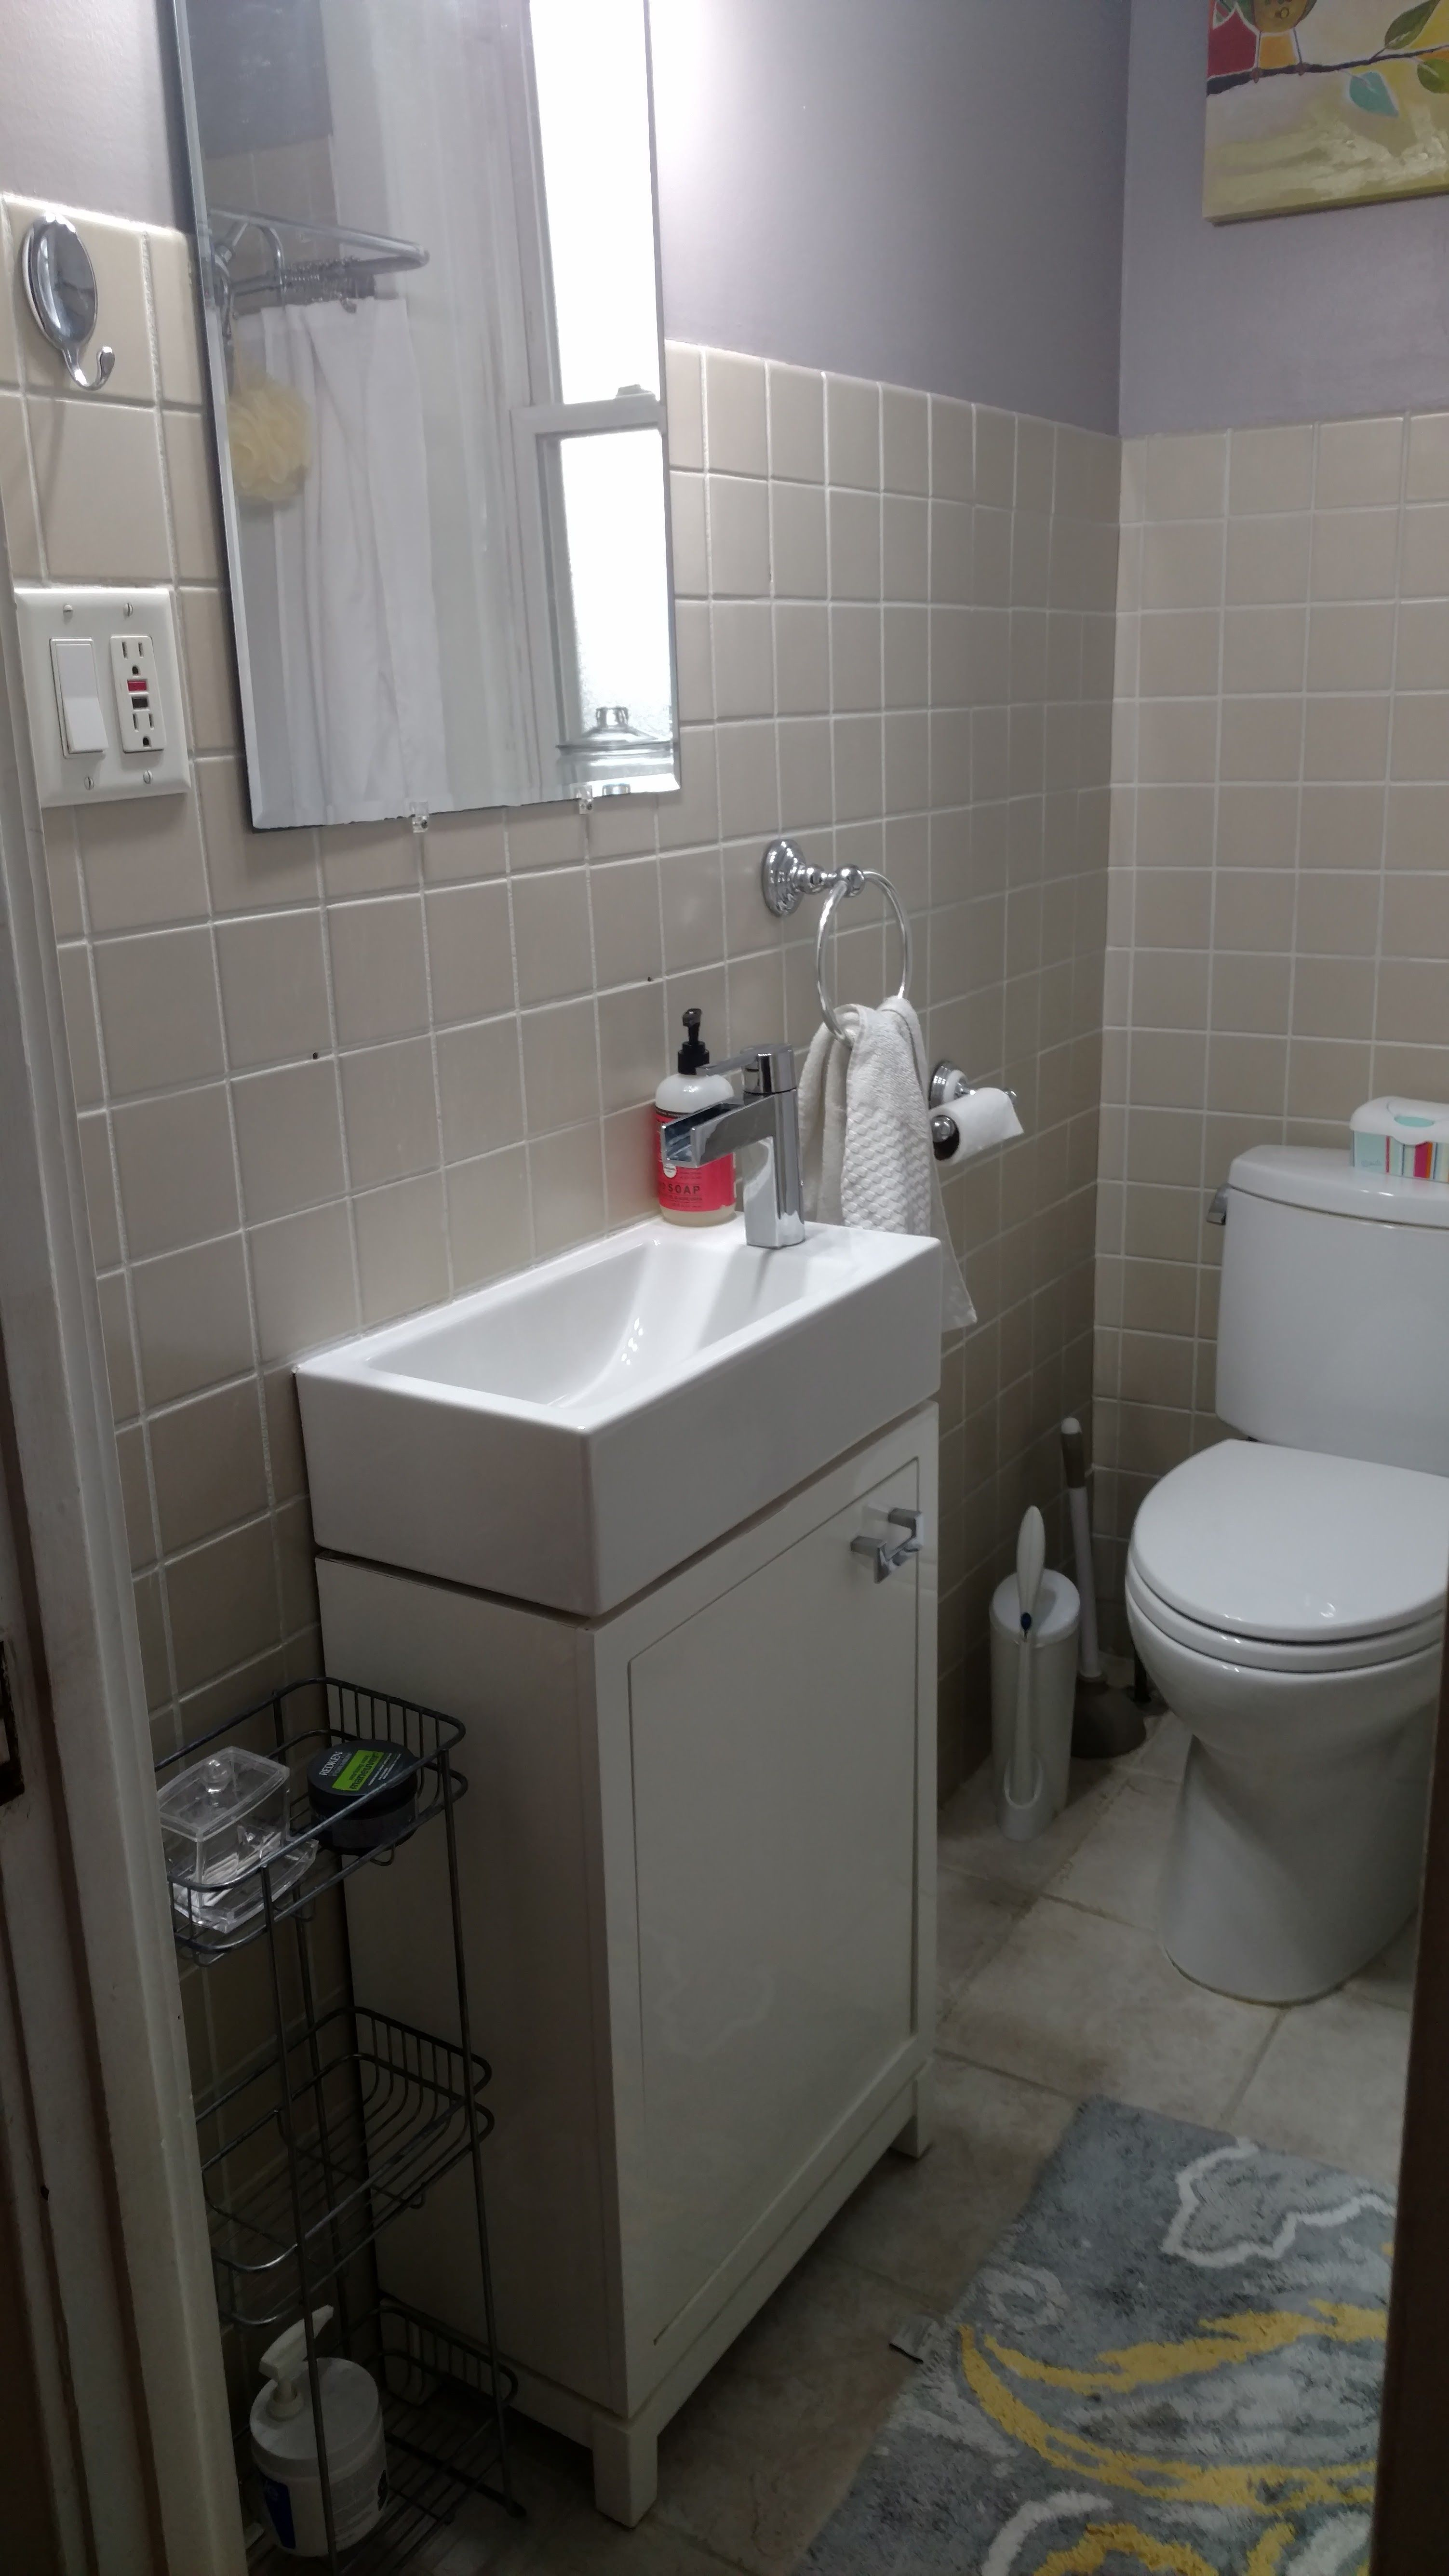 Chicago Condo Small Bathroom Remodel Complete Gut QuickCrafter - Bathroom gut and remodel